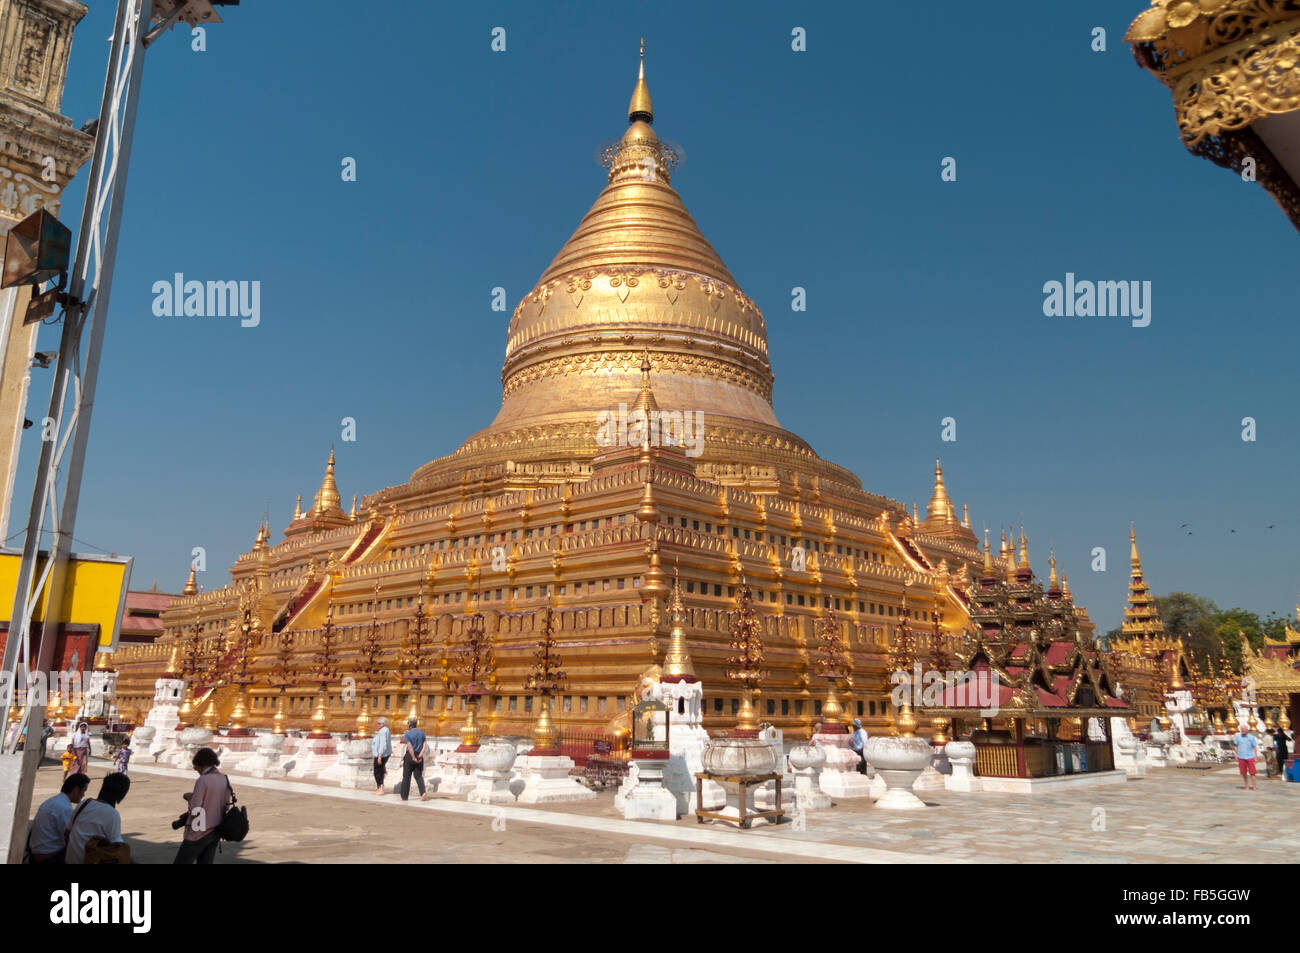 Main stupa of Shwezigon pagoda in Bagan, Mandalay Region, Myanmar. Stock Photo